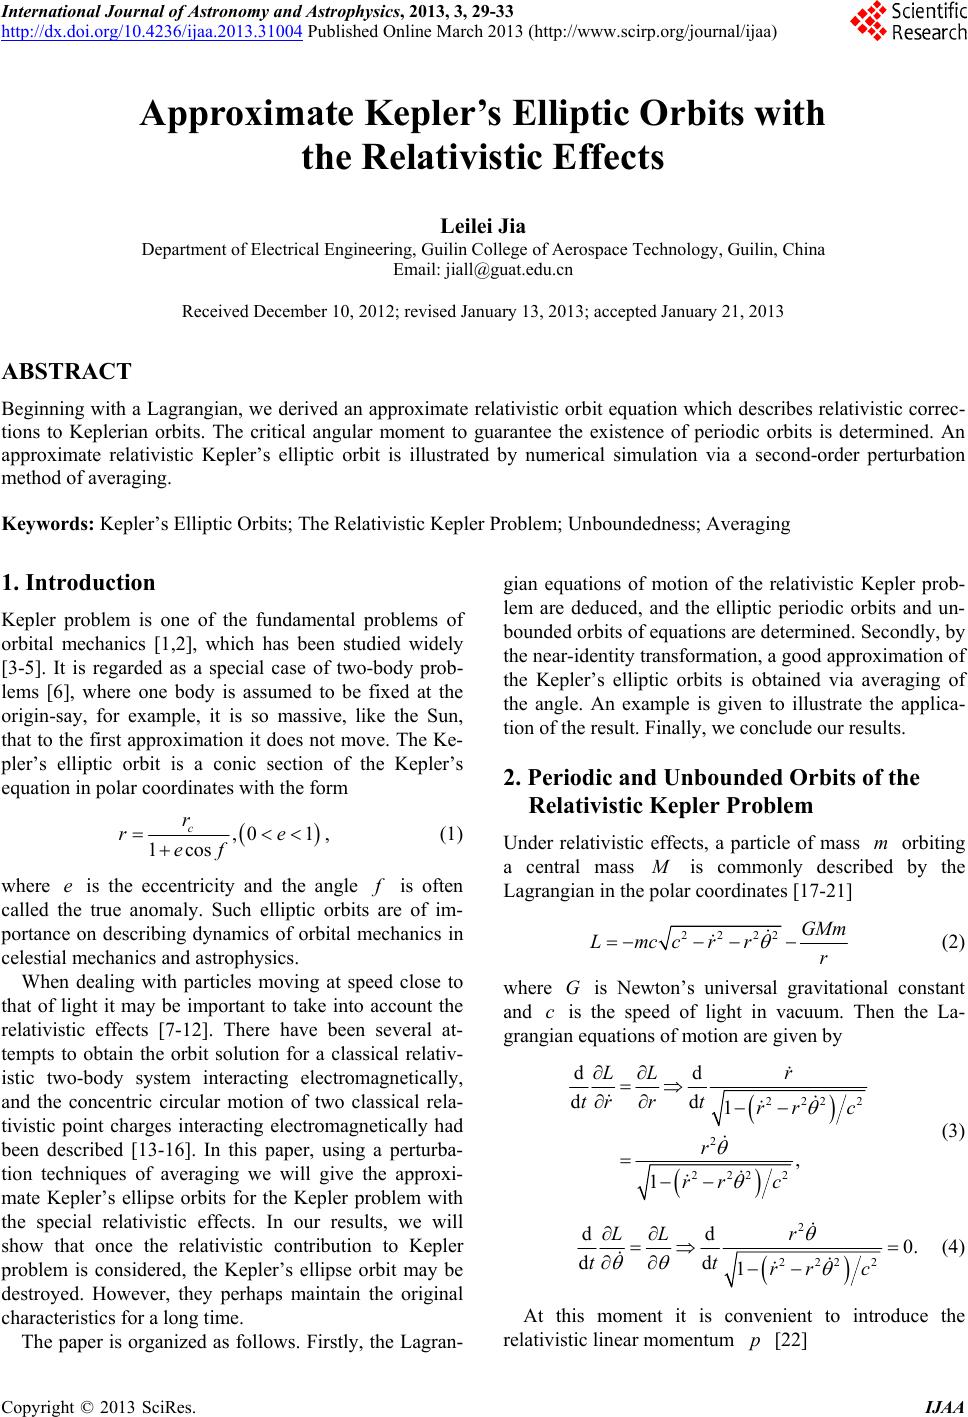 Approximate Kepler S Elliptic Orbits With The Relativistic